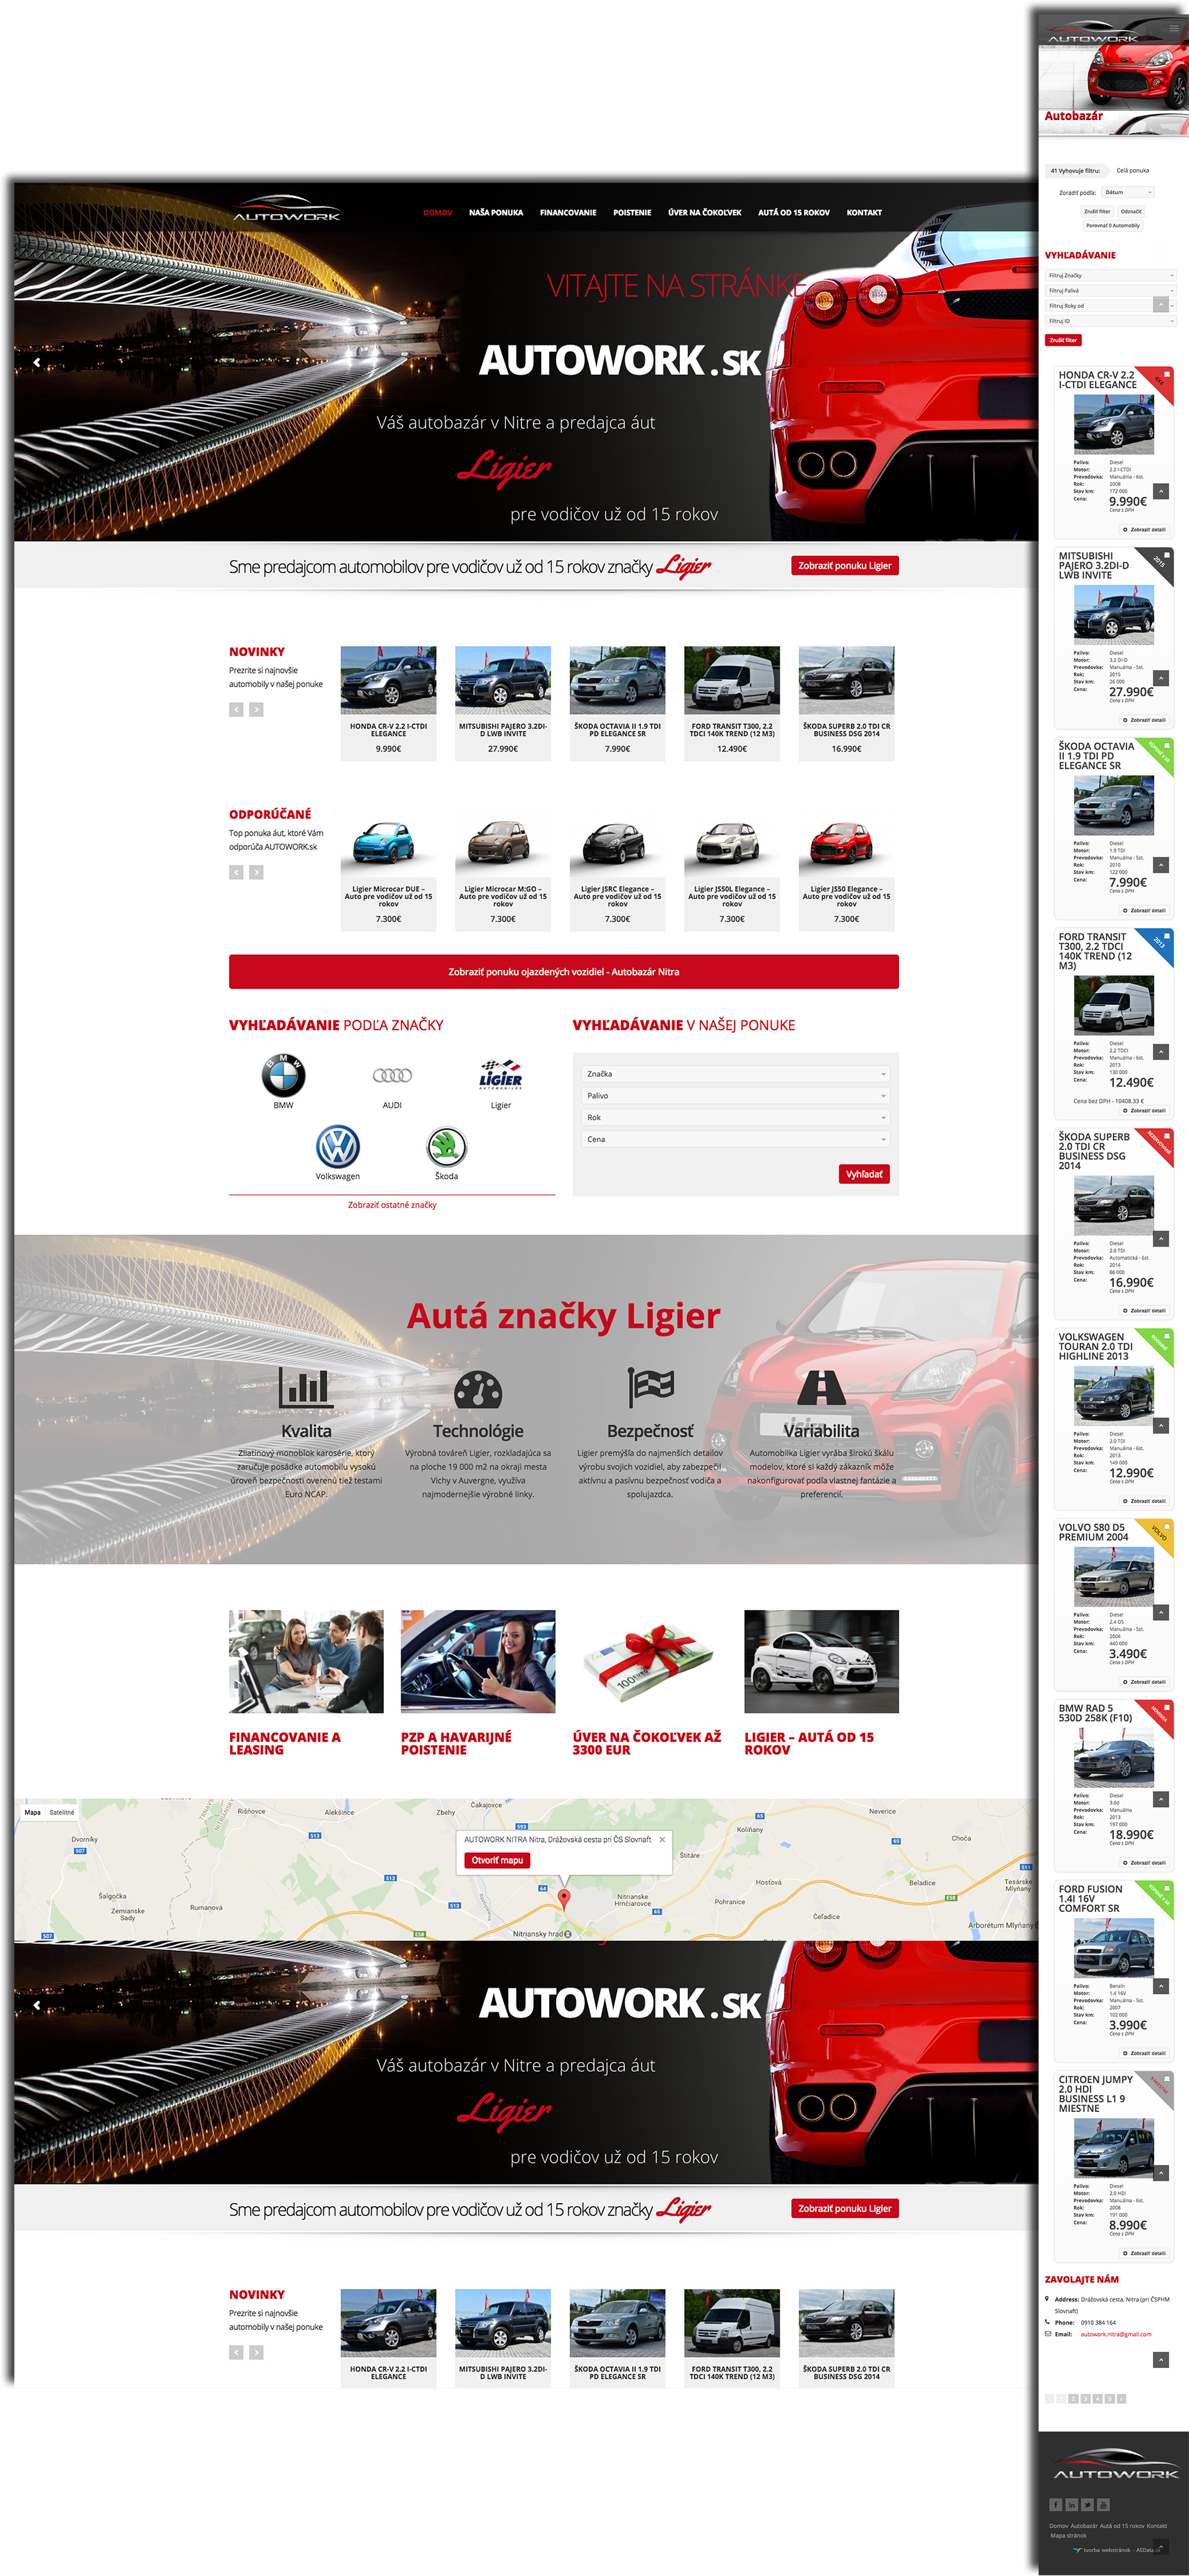 Fully responsive design of websites for mobile devices - Autowork